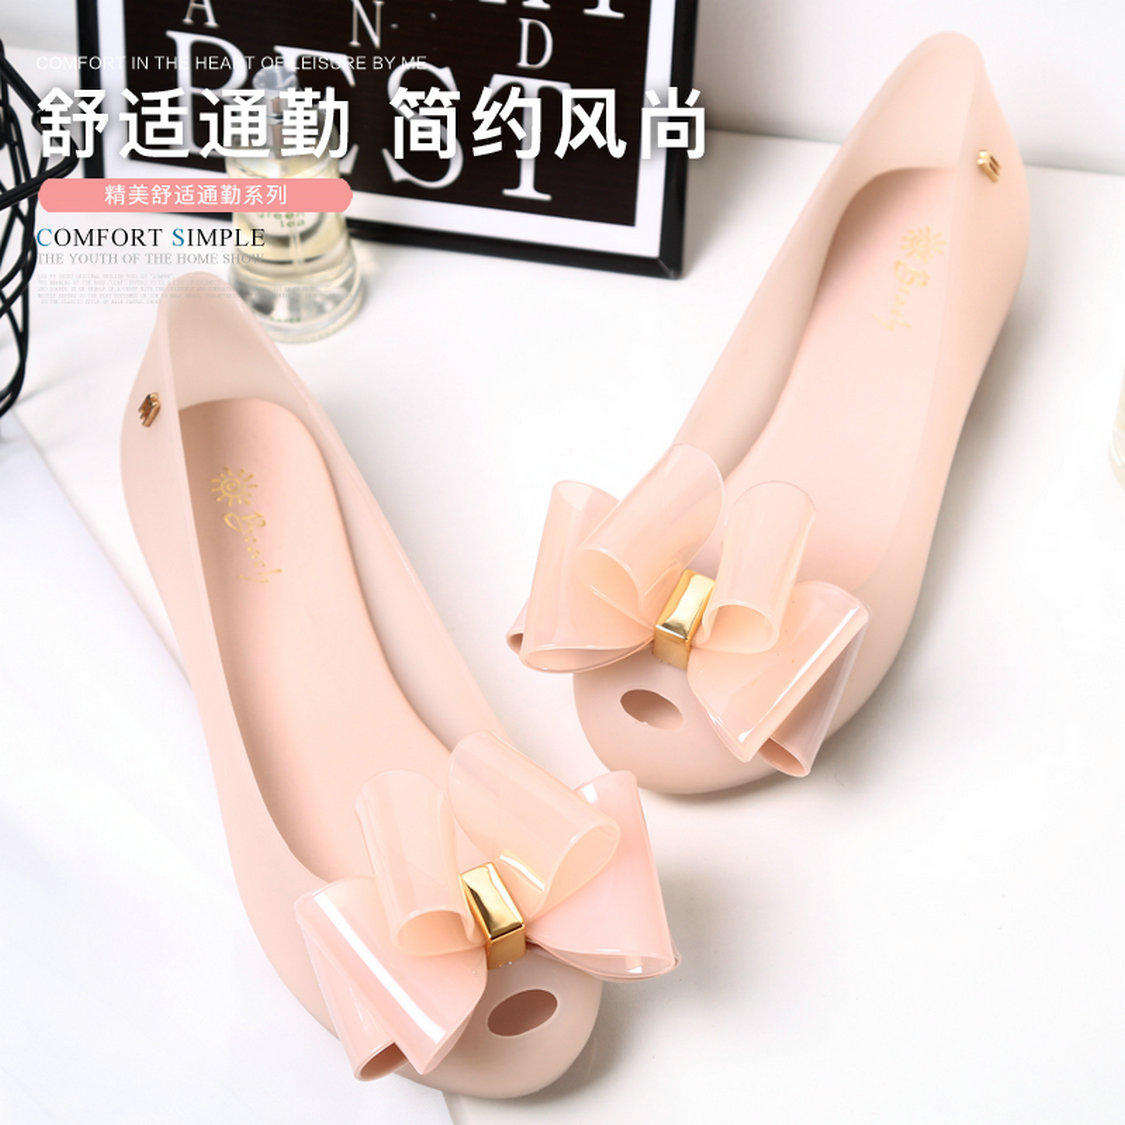 2018 new versatile Baotou sandals womens xiapo in heel high-rise boat shoes simple Korean flat thick heel jelly shoes